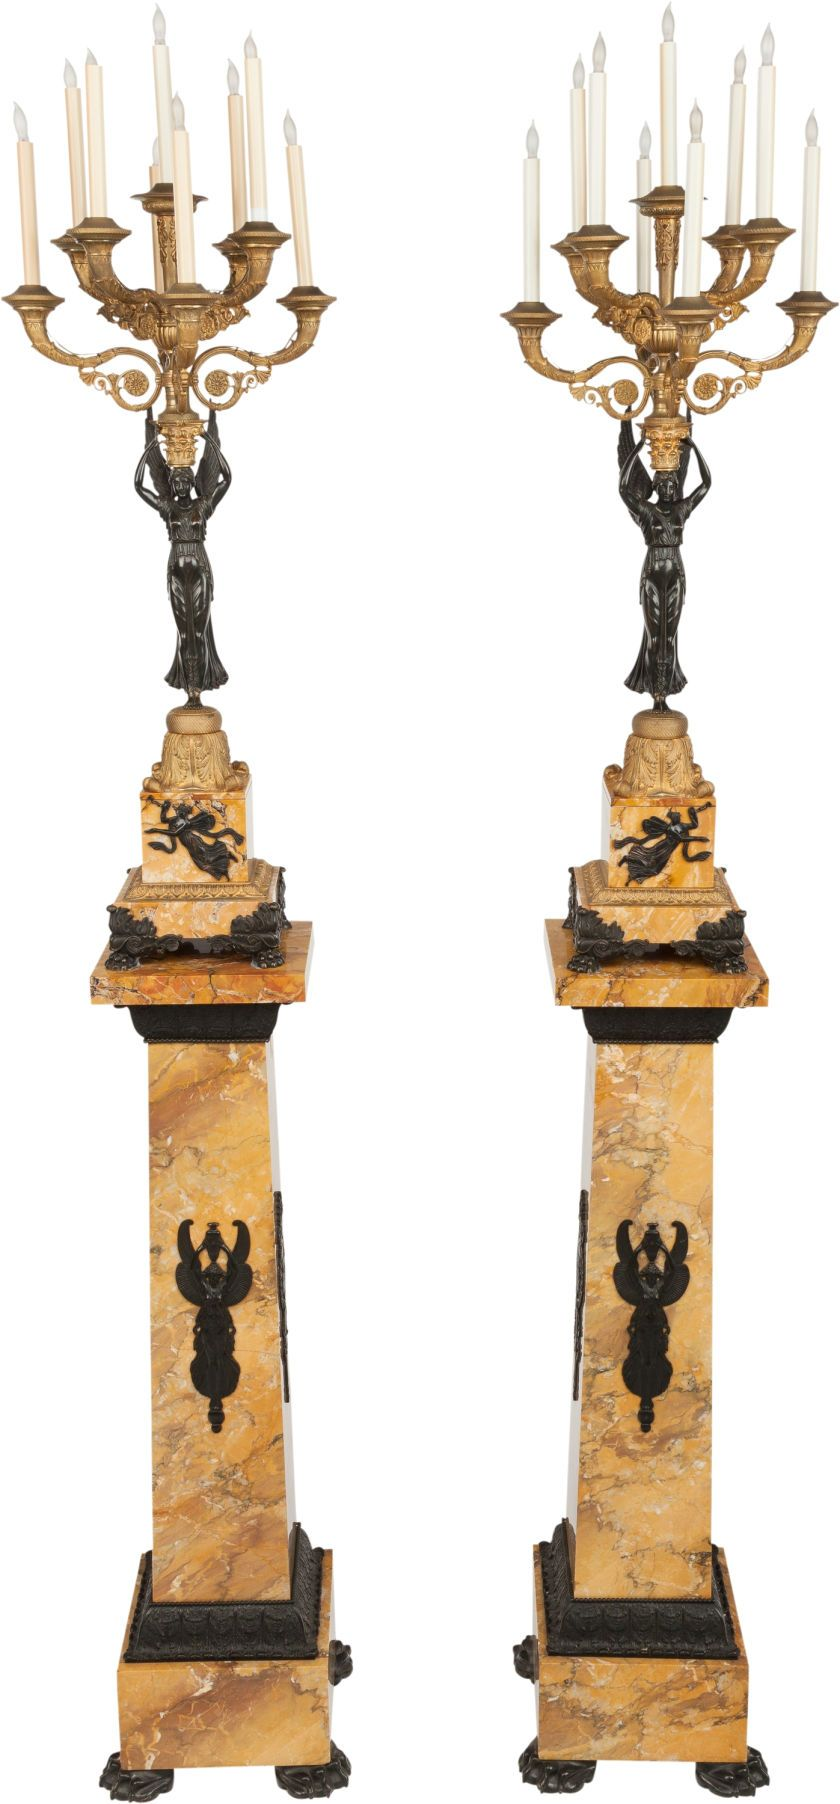 A PAIR OF EMPIRE-STYLE PATINATED AND GILT BRONZE SIX-LIGHT CANDELABRA ON MARBLE PEDESTALS, 20th century.